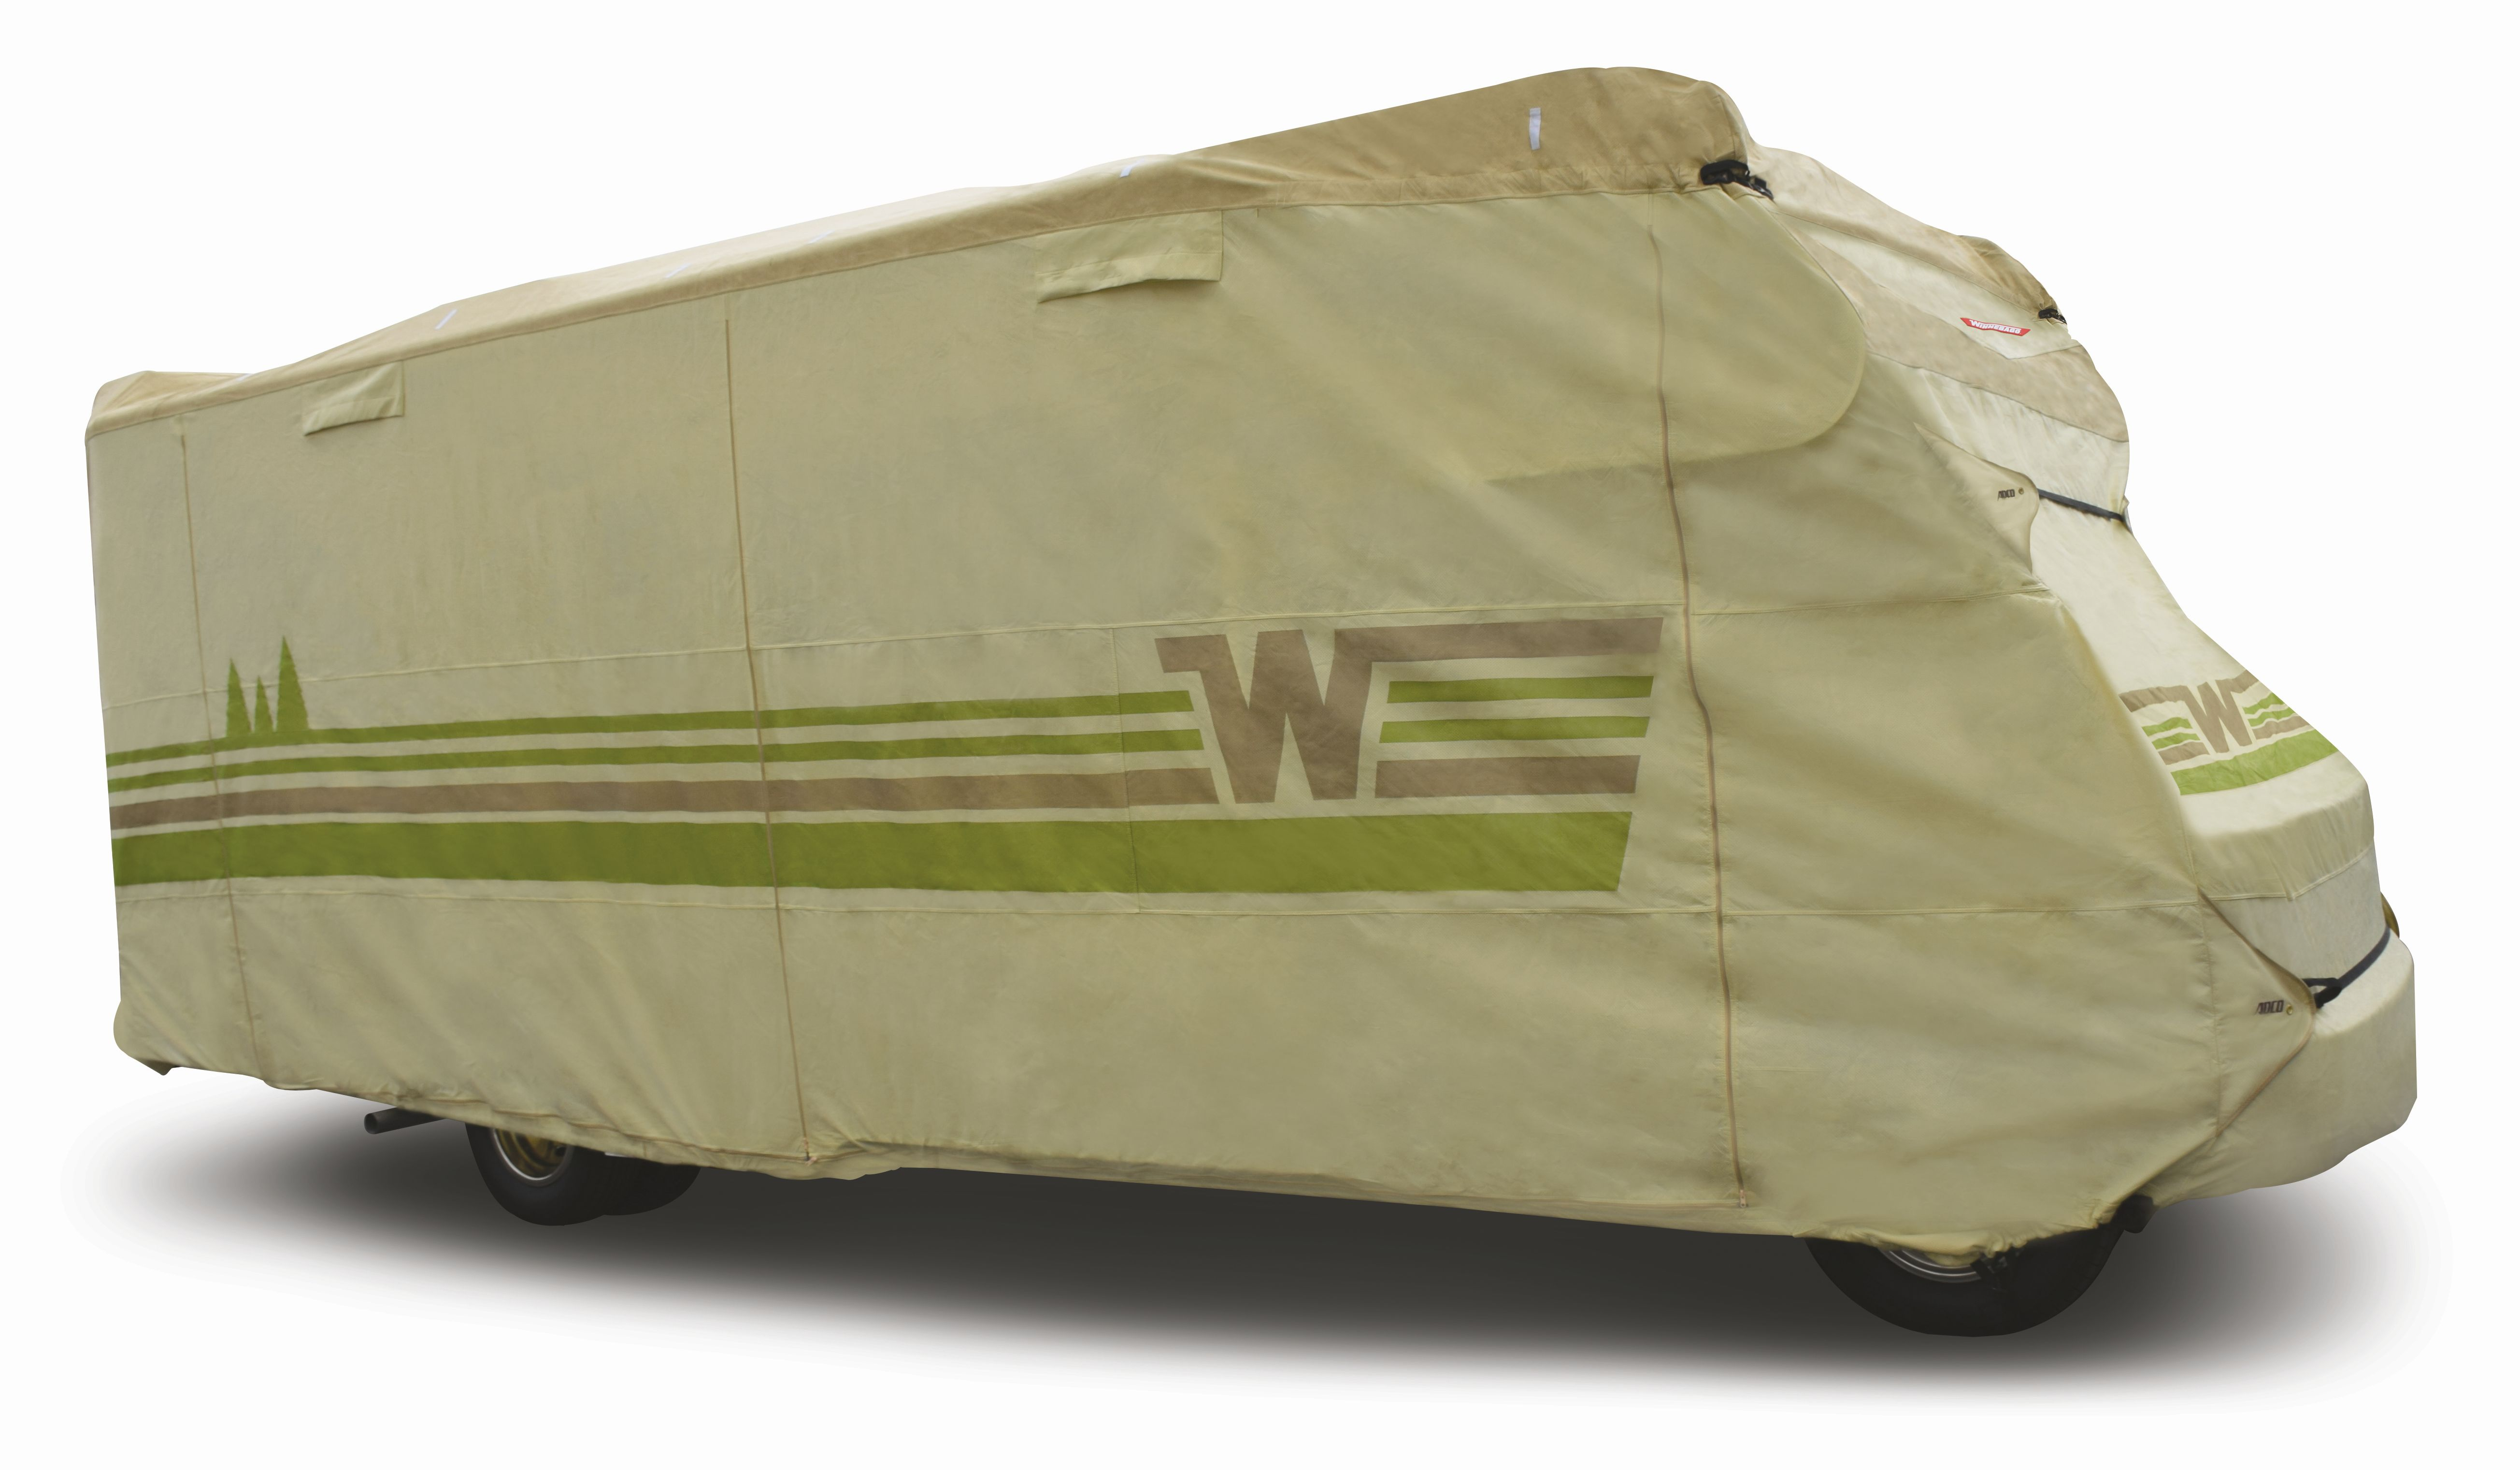 64815 Adco Covers RV Cover For Class C Motorhome